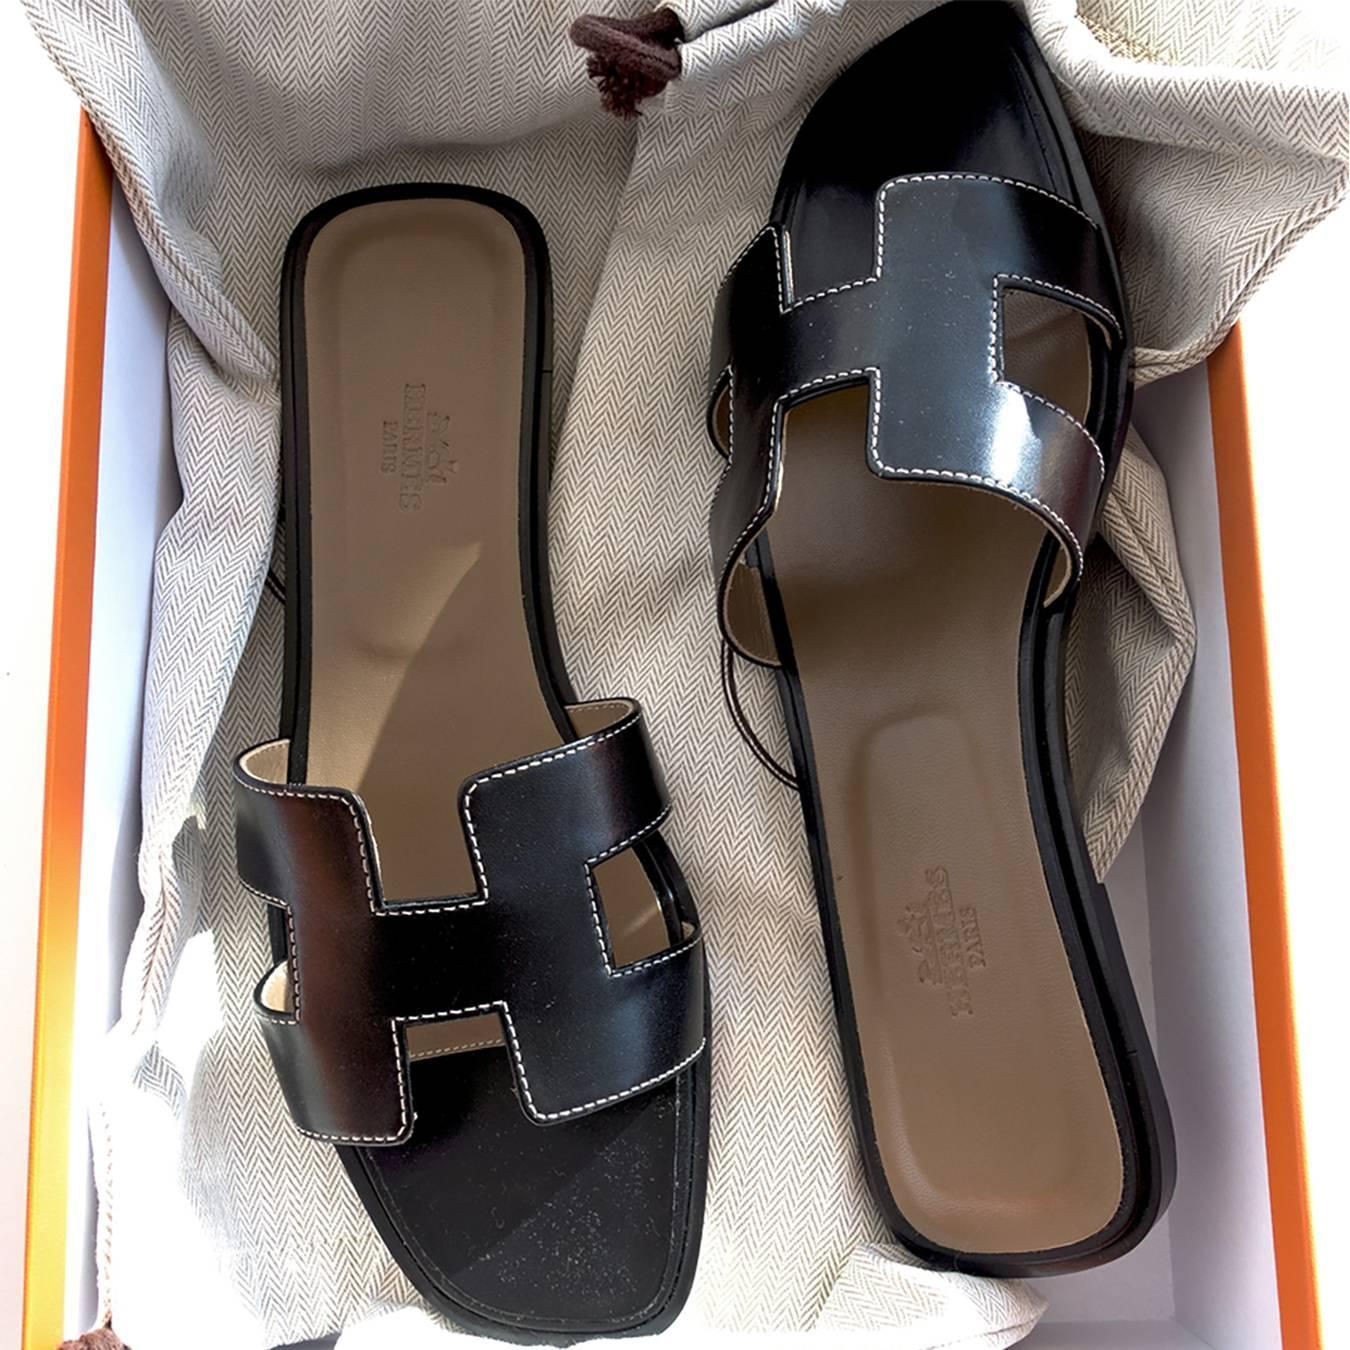 7ca5294cf85c Hermes Oran Black Box Leather Sandals White Stitching Size 40 or 3.9 or 10  at 1stdibs